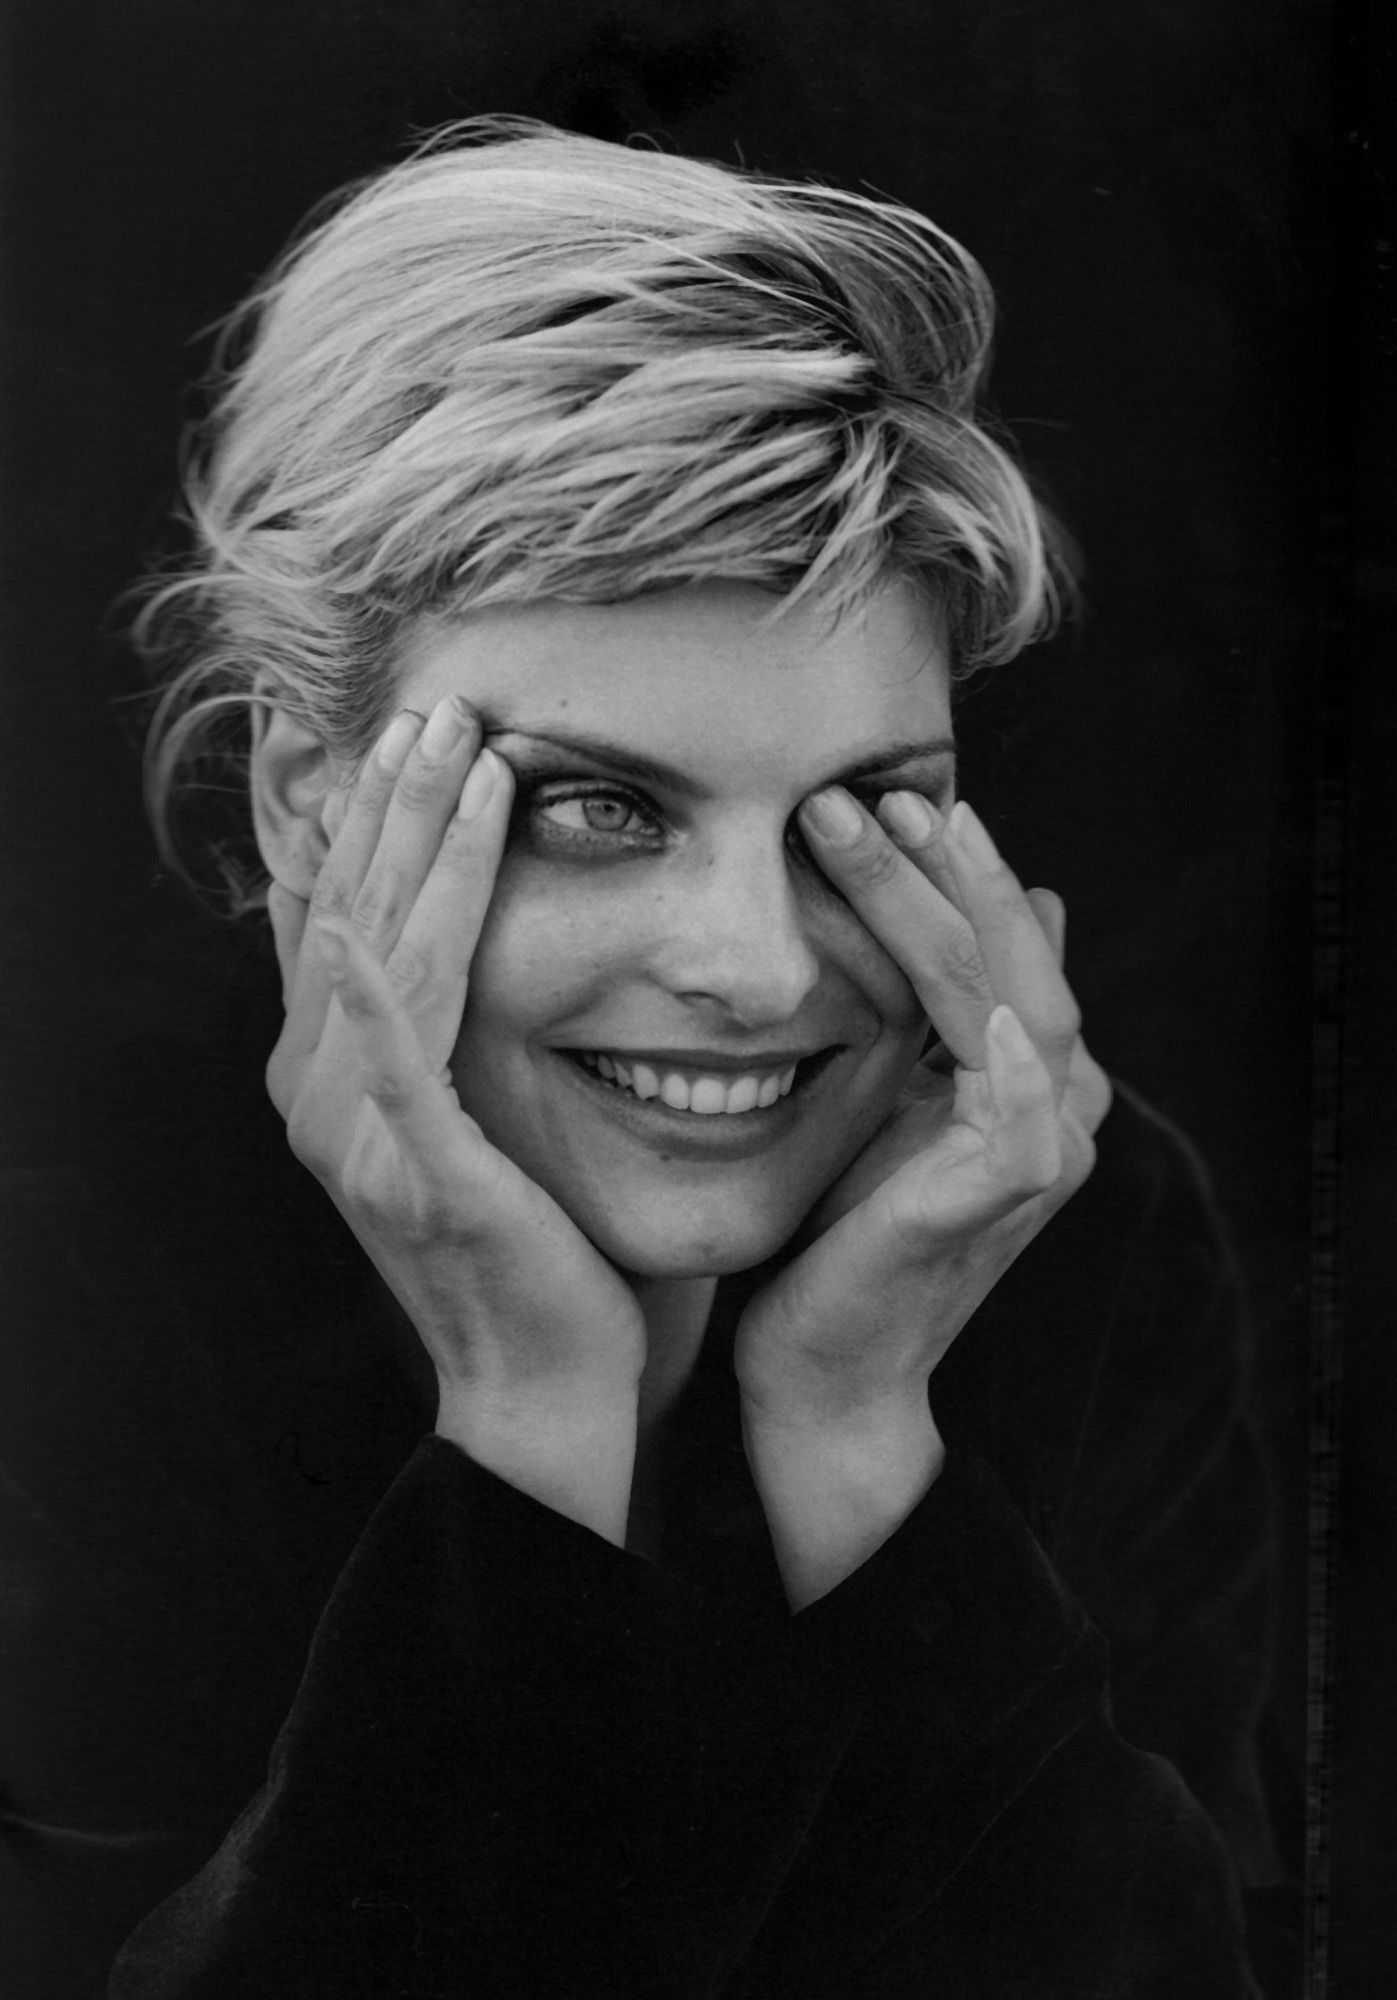 ☆ Linda Evangelista graphy by Peter Lindbergh